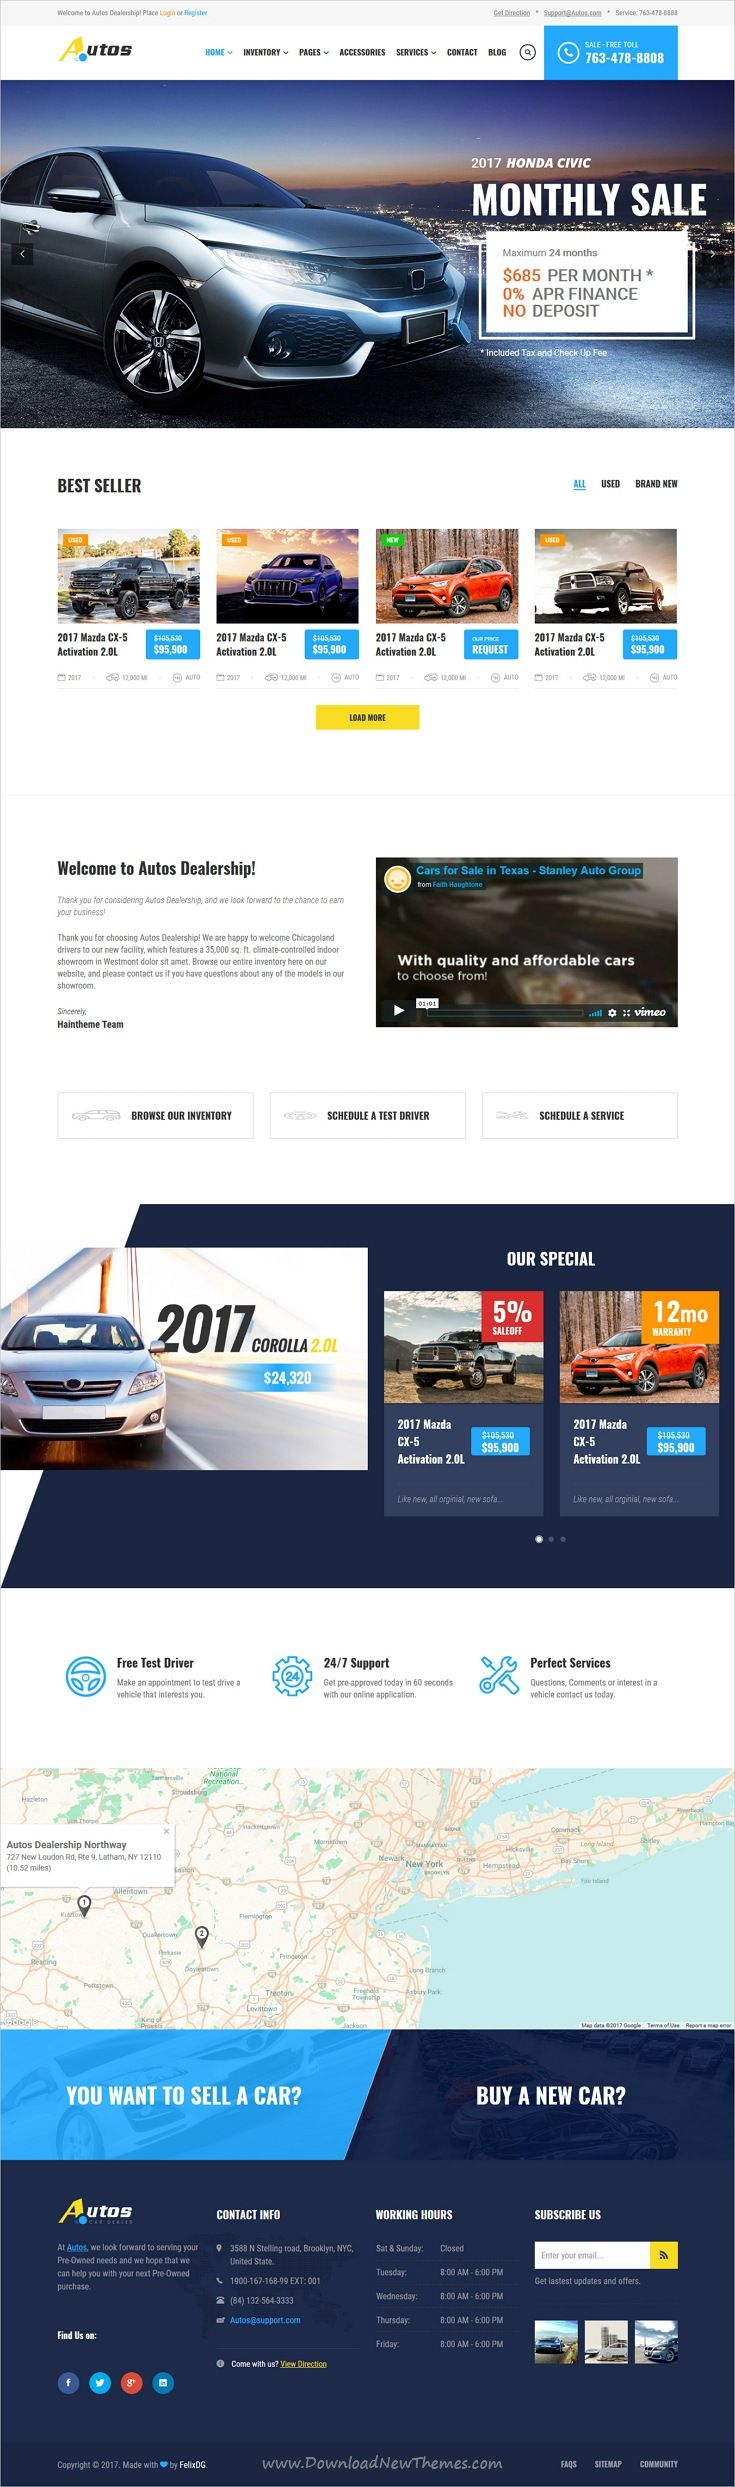 Autos is clean and modern design responsive #bootstrap template for #automotive and #car dealers website with 6 unique homepage layouts download now